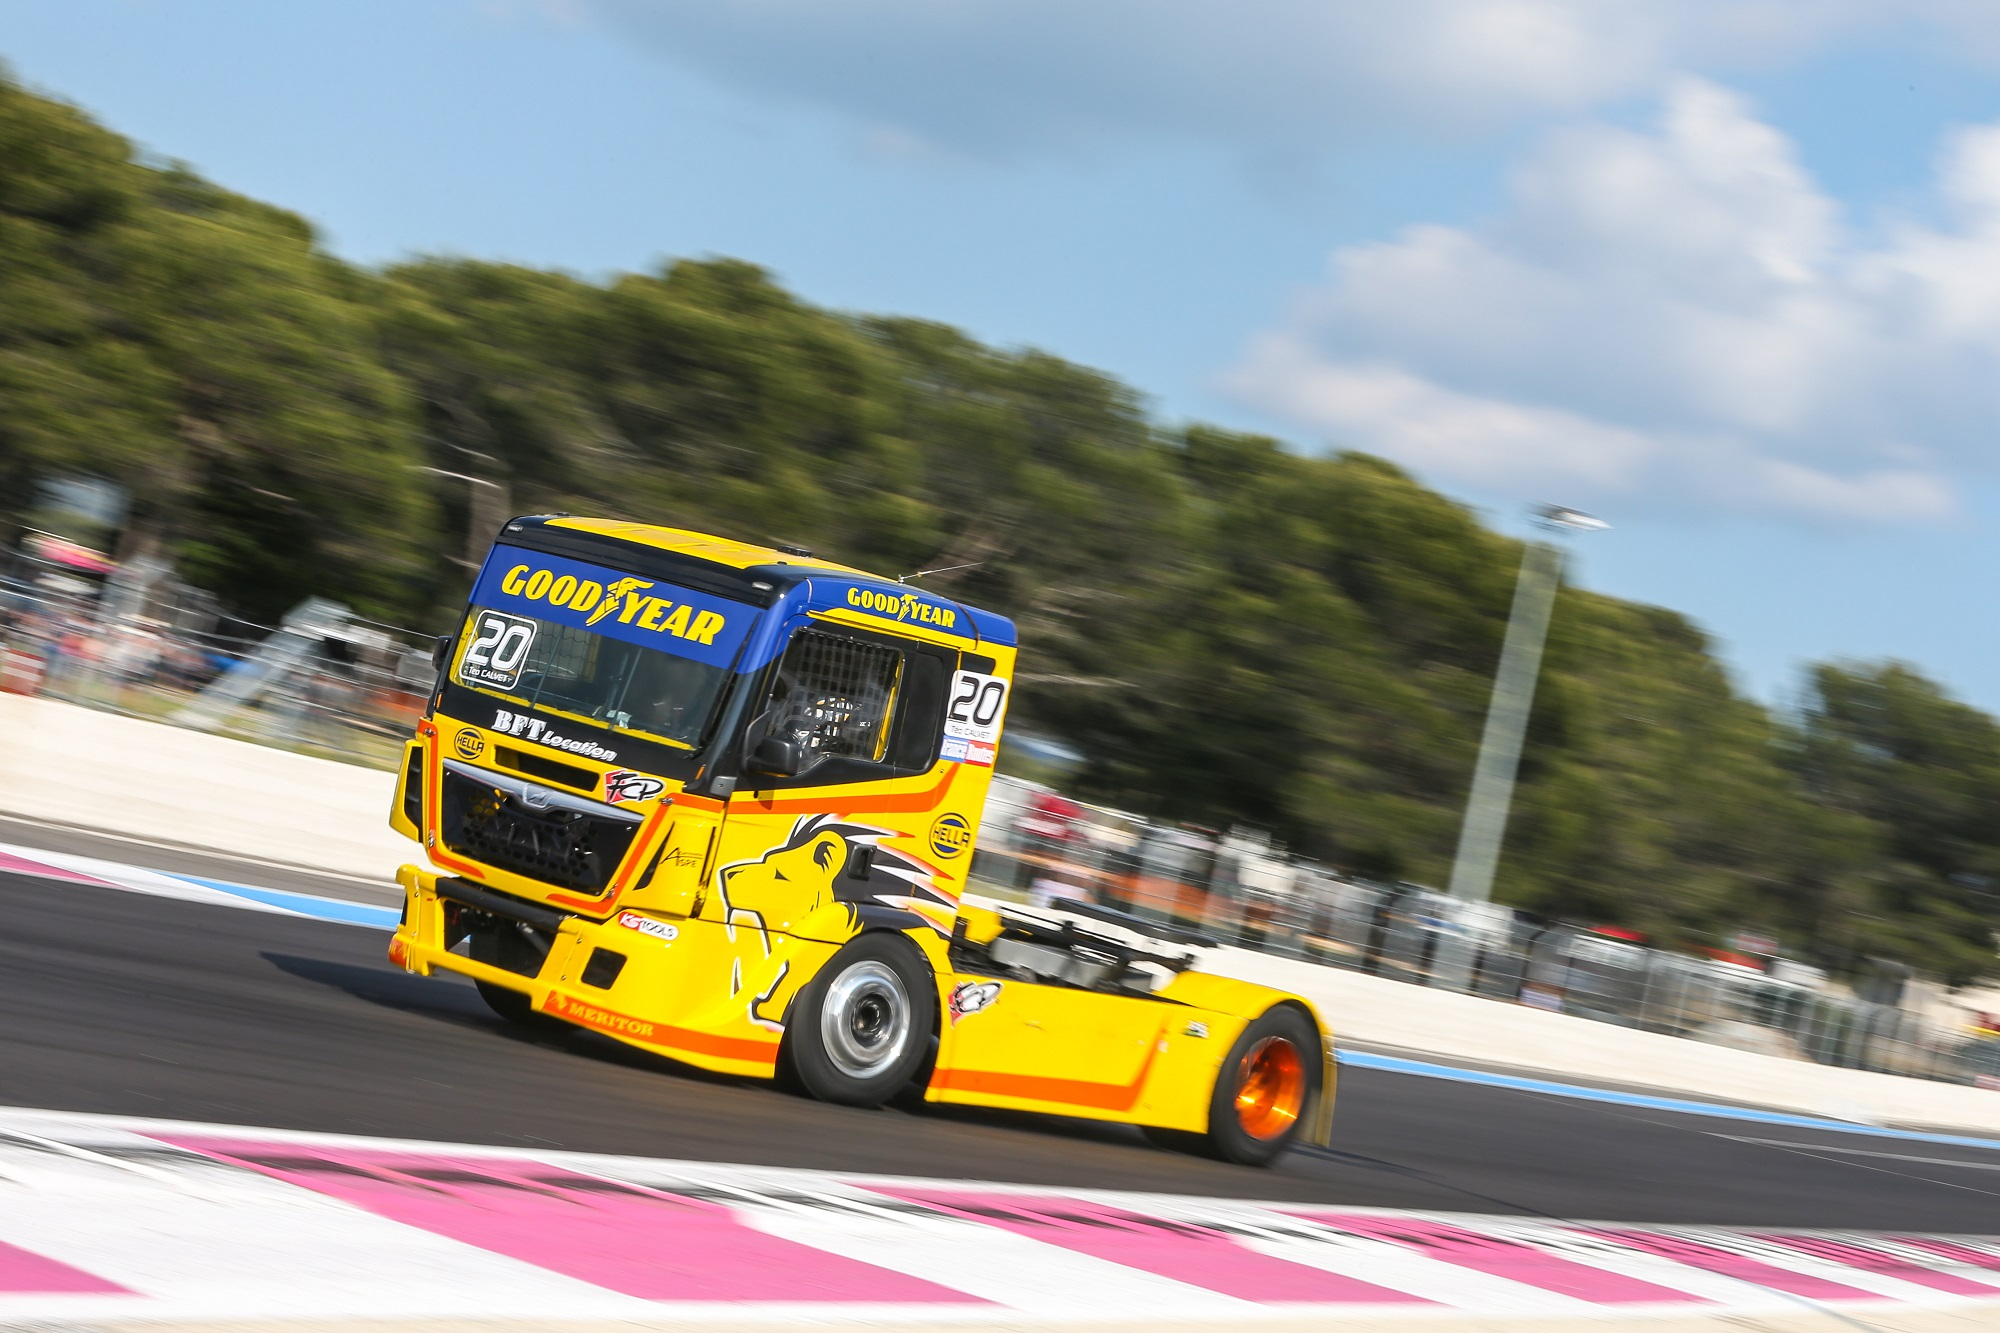 The FIA European Truck Racing Championship starts on Goodyear tyres